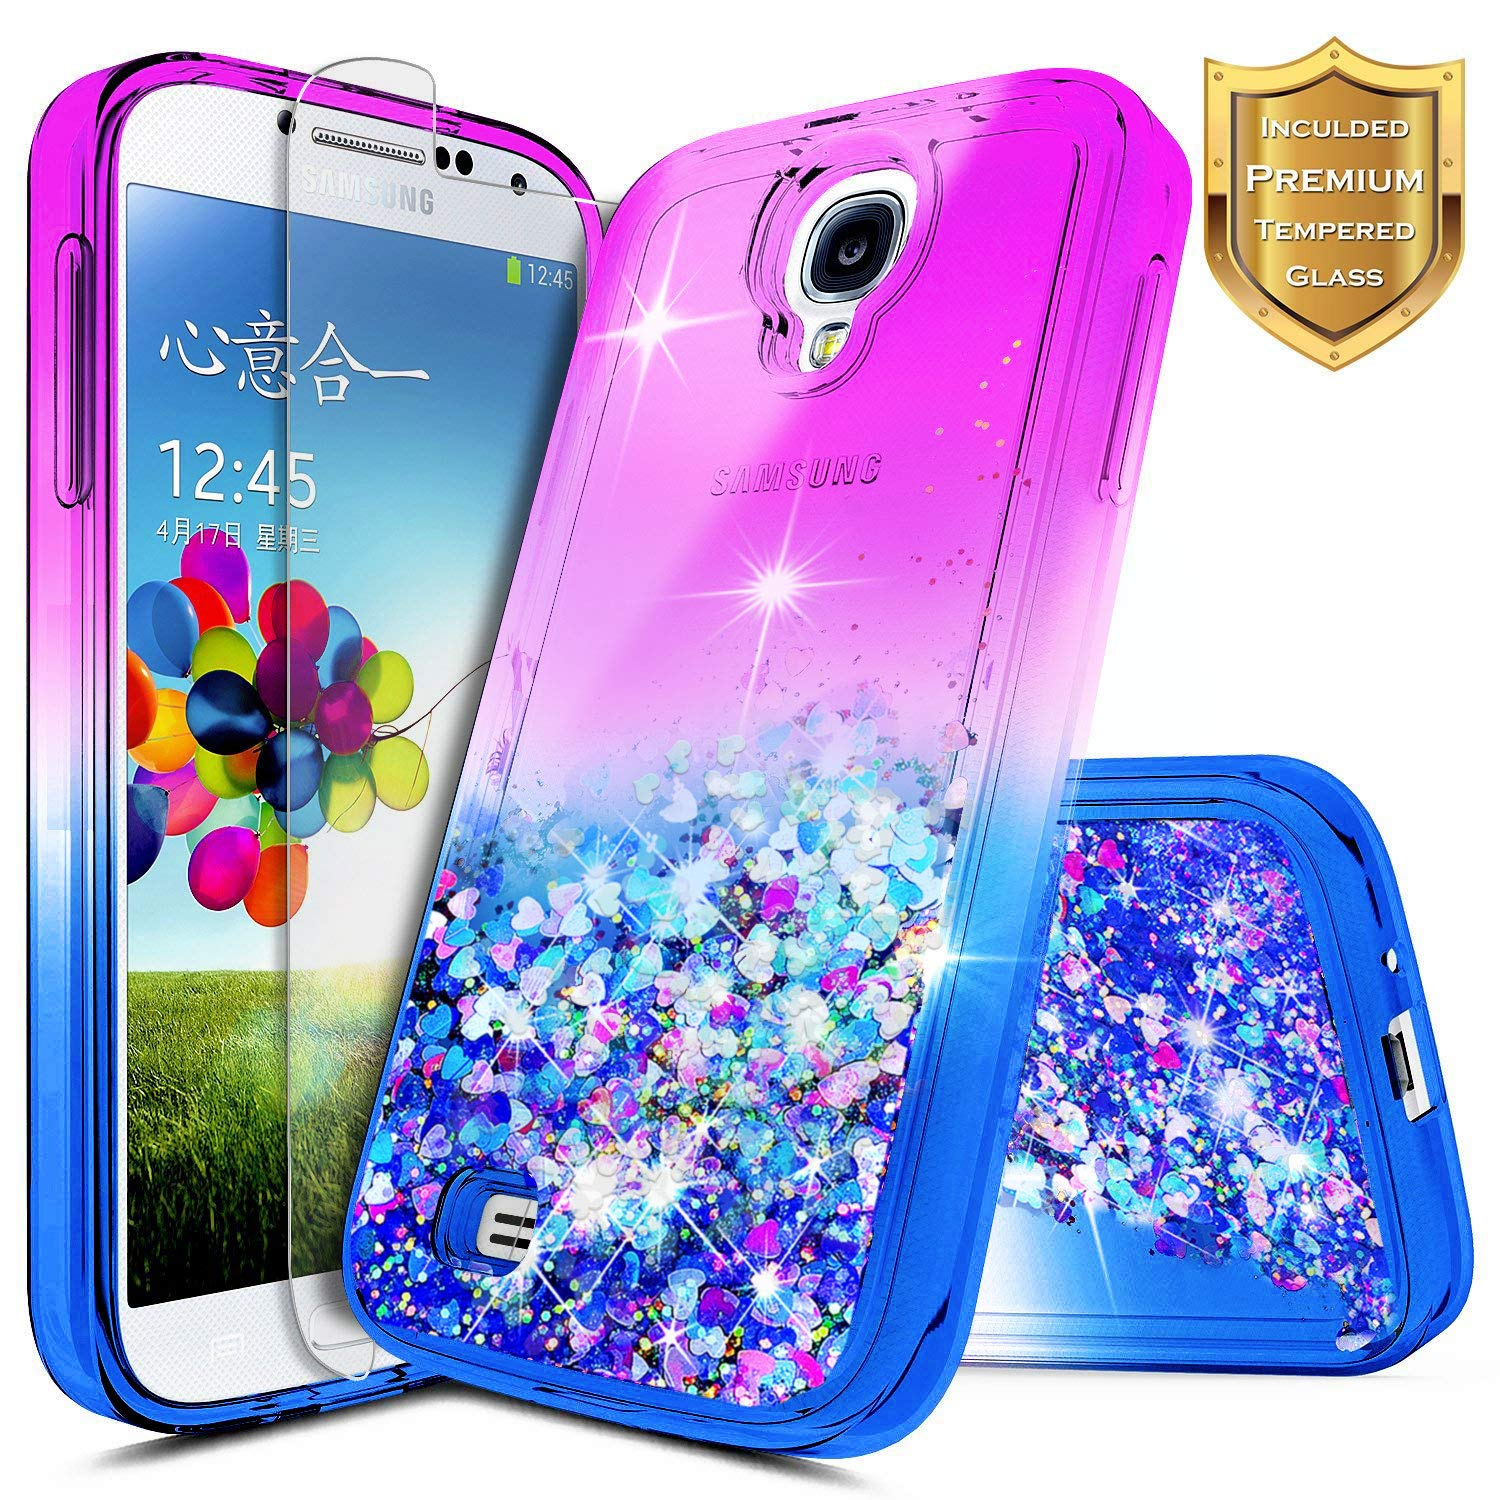 Galaxy S4 Case with Tempered Glass Screen Protector for Girls Women Kids, NageBee Glitter Liquid Bling Floating Waterfall Diamond Shockproof Durable ...